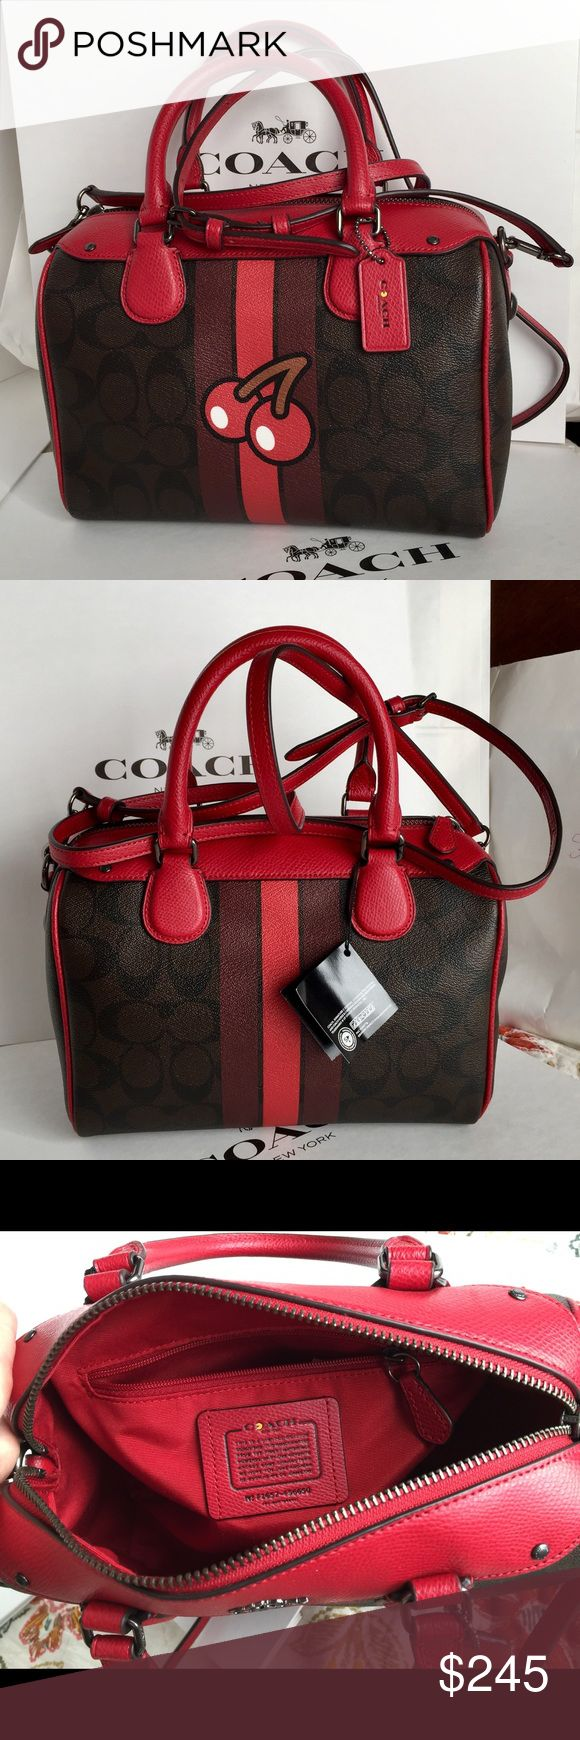 🍀Coach Purse🍀 100% Authentic Limited Edition Coach Purse, brand new!😍😍😍 Coach Bags Crossbody Bags